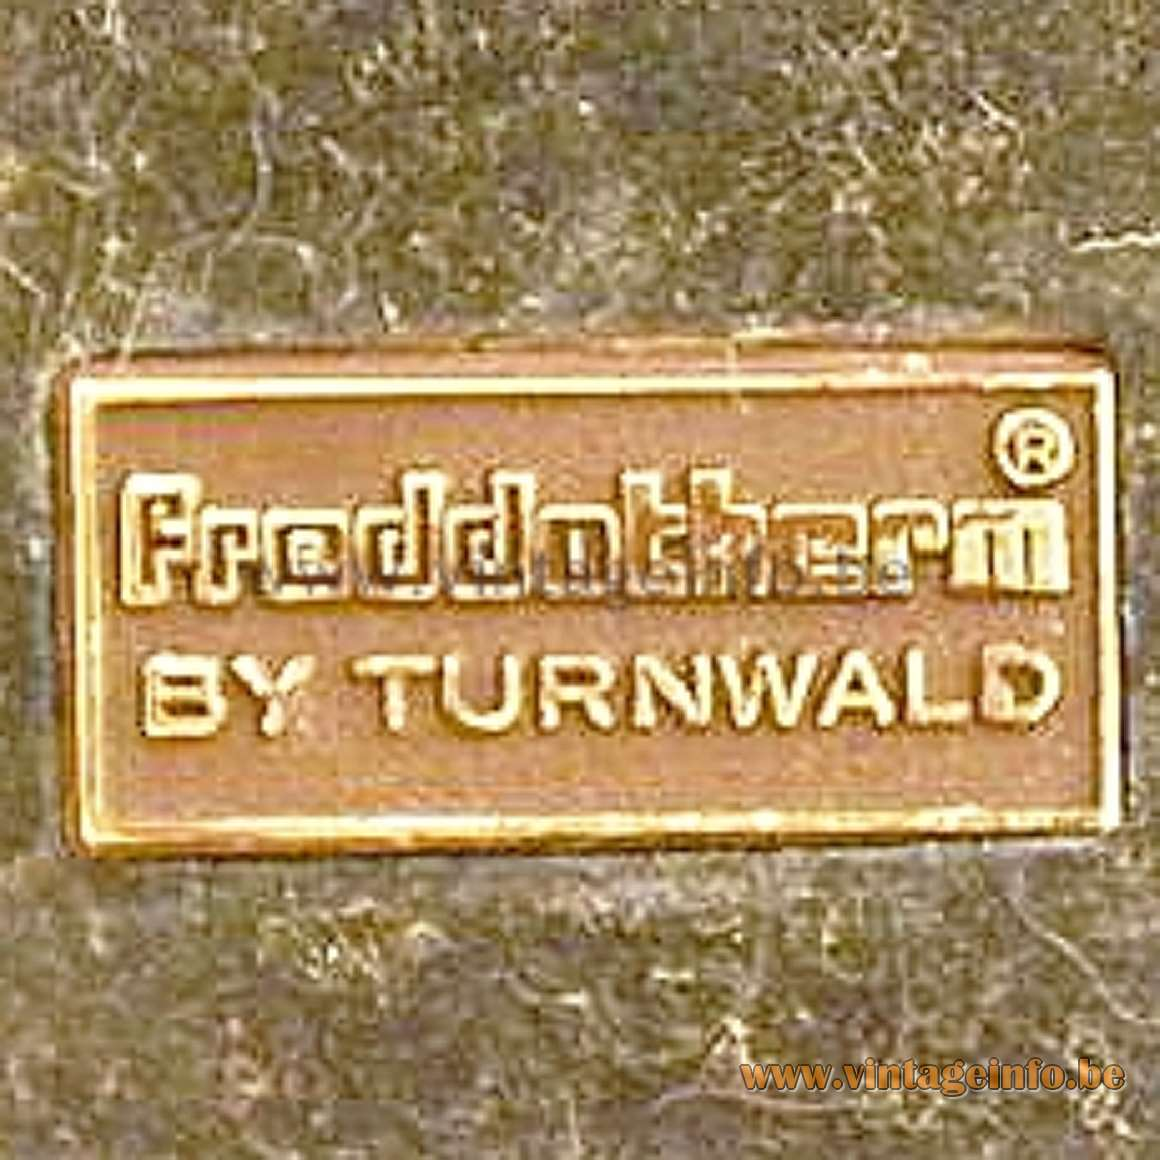 Freddotherm by Turnwald